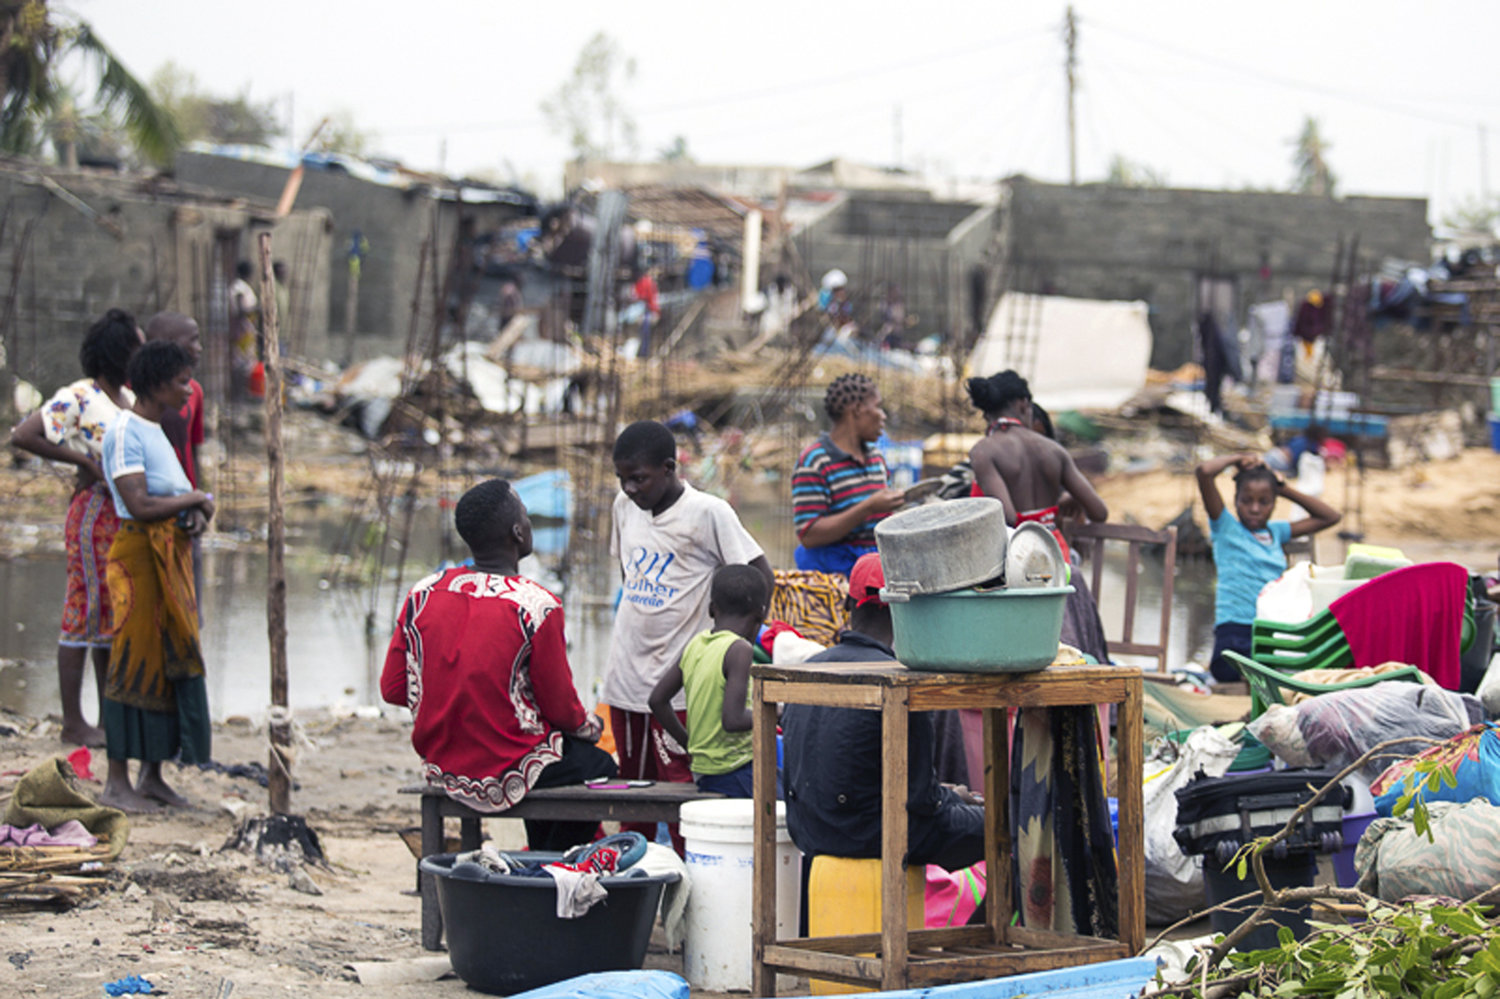 Residents of the city of Beira, which was nearly destroyed by Cyclone Idai, salvage what is left of their belongings.   Denis Onyodi/International Red Cross via AP